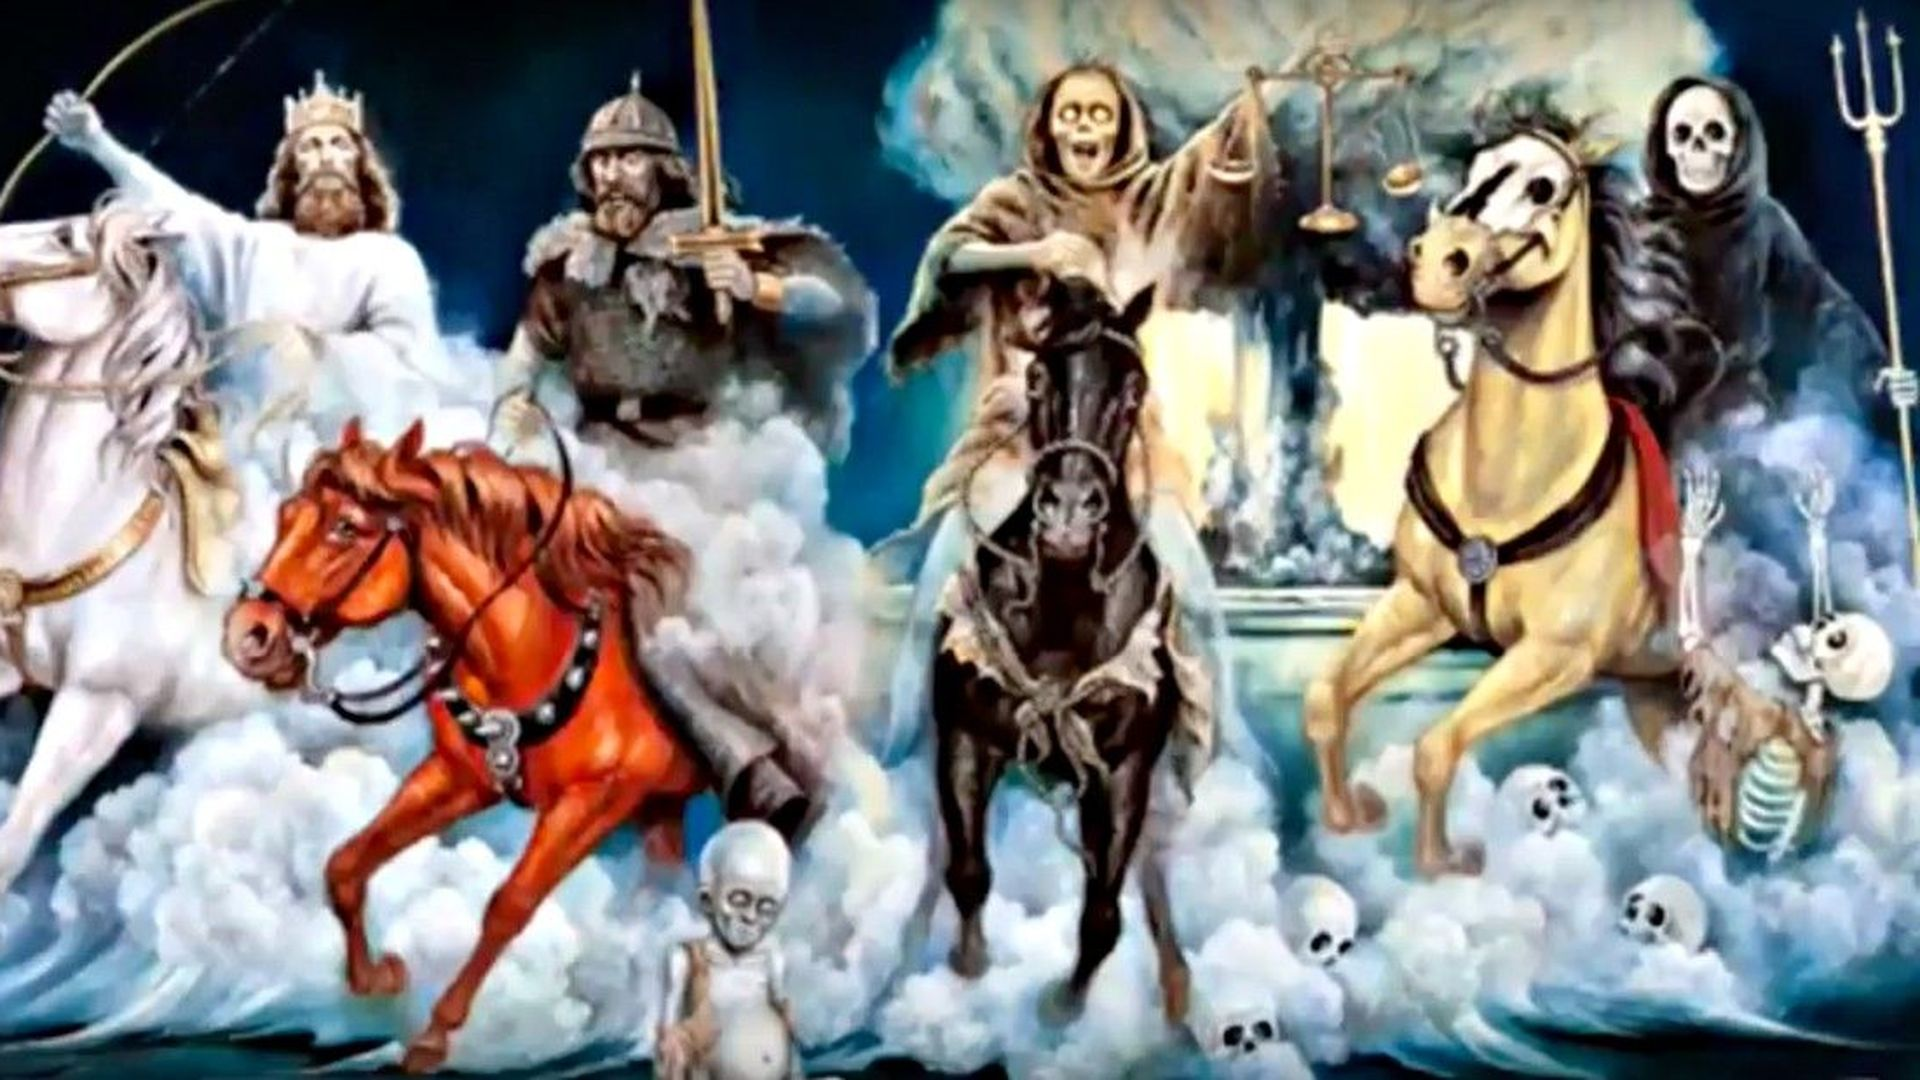 Zoo: Which of the Four Horsemen of the Apocalypse are you?